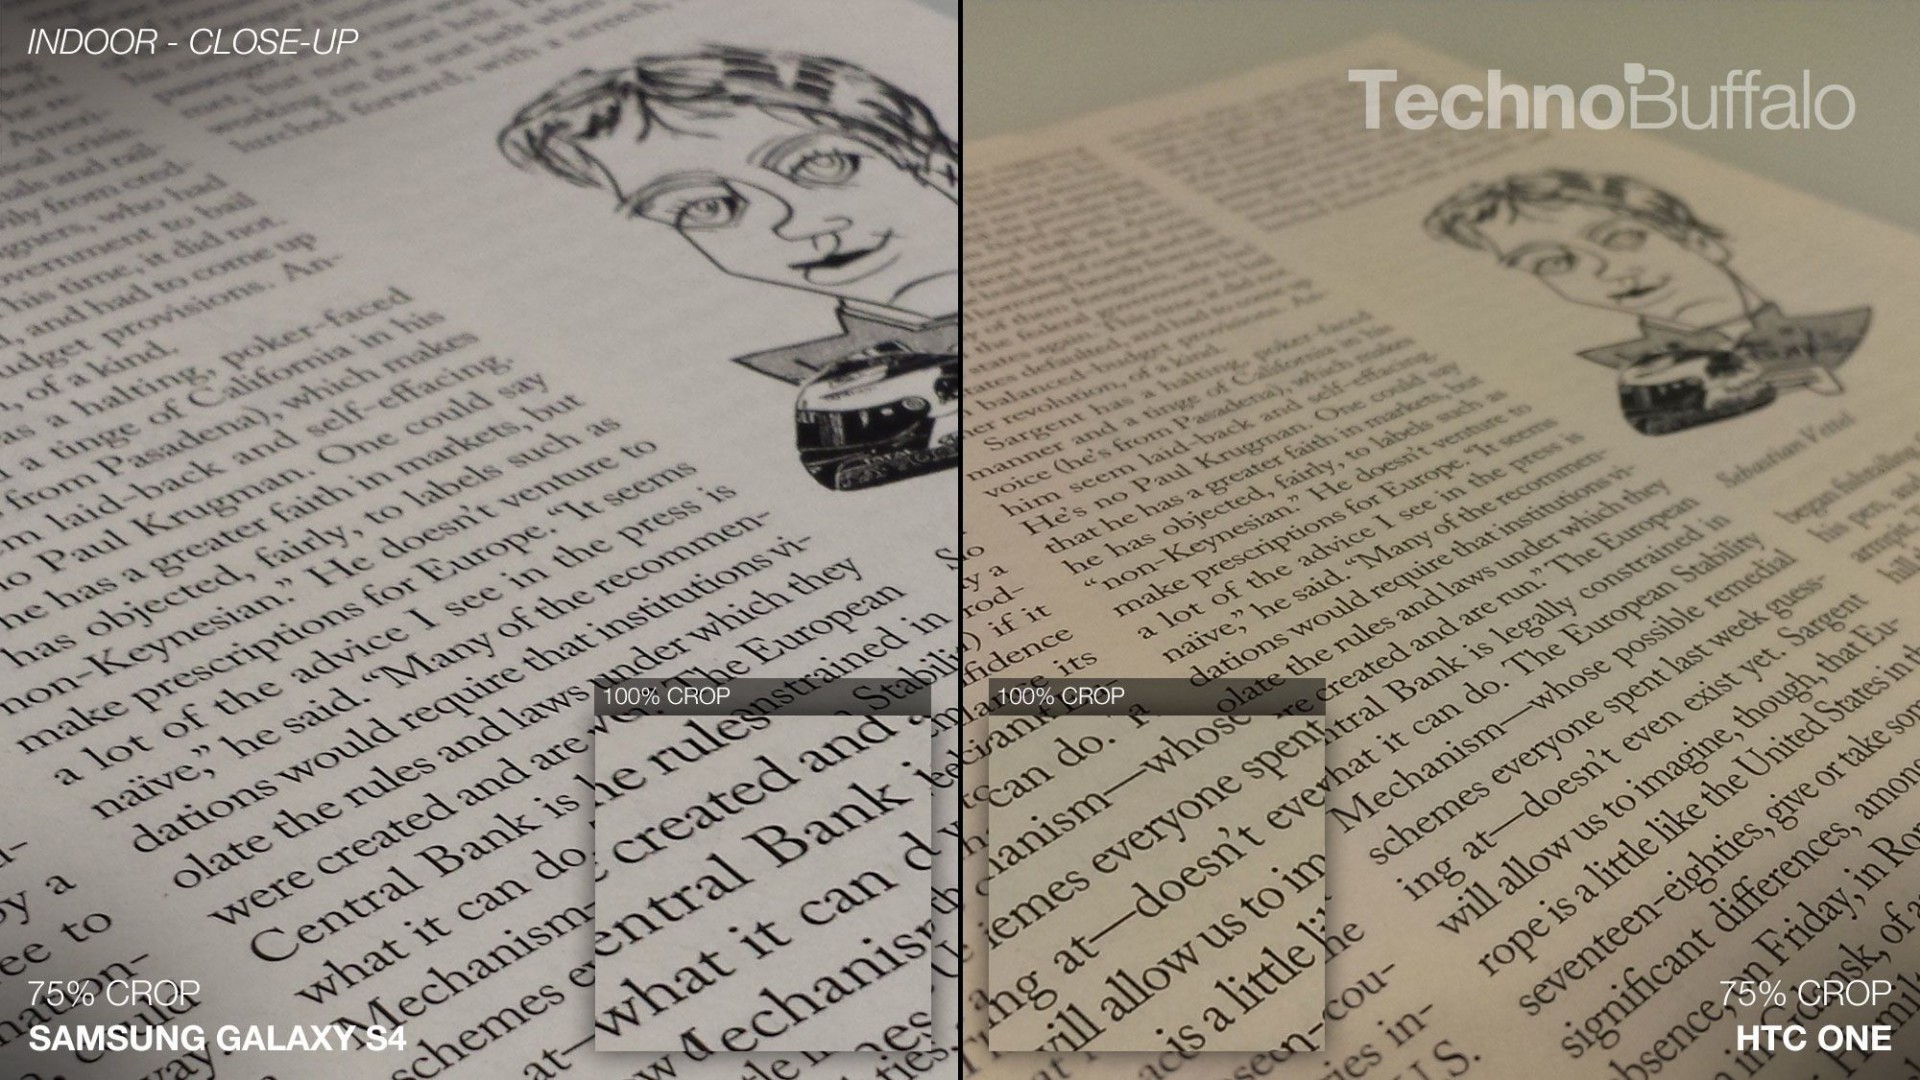 Samsung-Galaxy-S4-vs-HTC-One-Camera-Comparison-Indoor-Close-Up